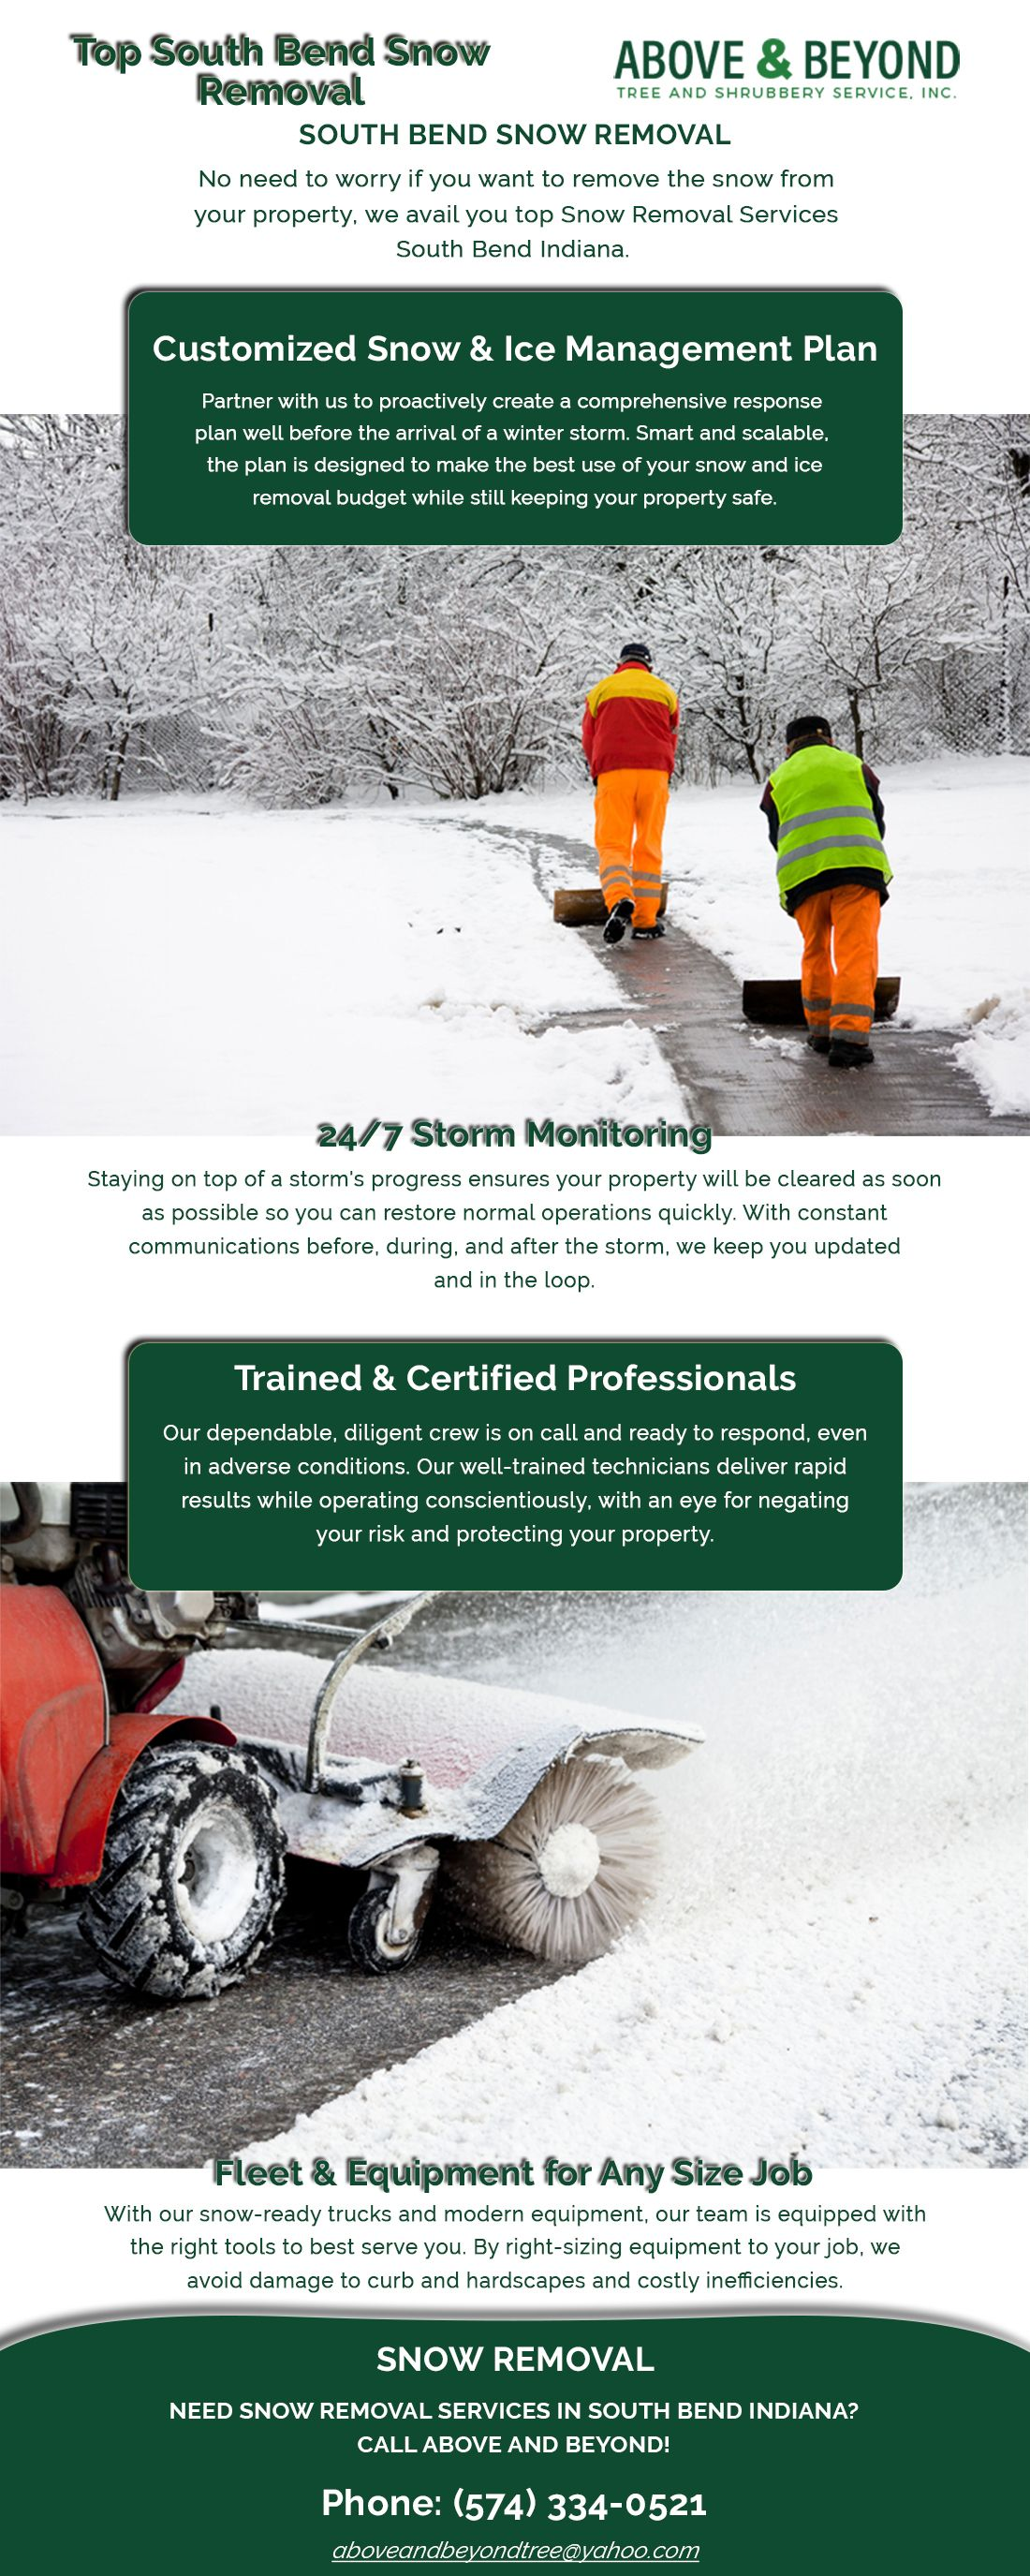 Above And Beyond Have The Expert Team Who Help You To Remove The Snow From Your Property In Best Time And Budget We Provide You E Snow Removal South Bend Snow